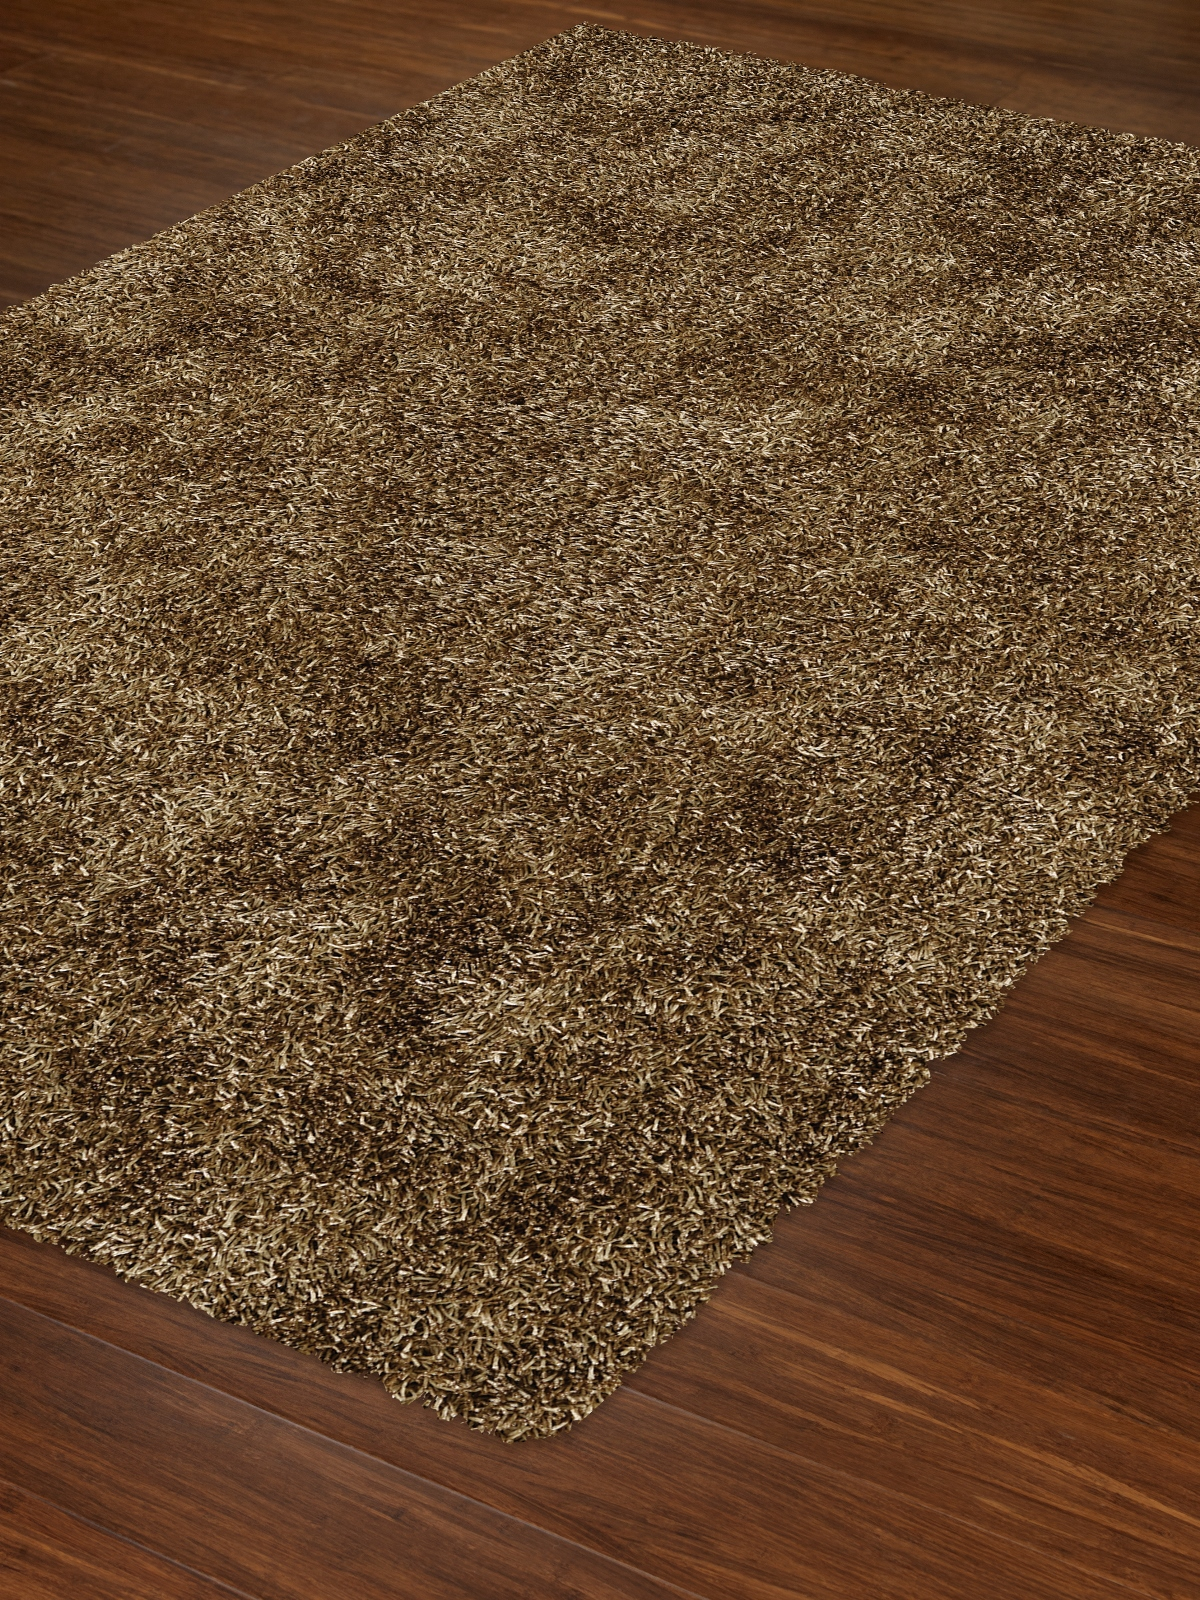 Dalyn Illusions Il69 Taupe Area Rug Free Shipping